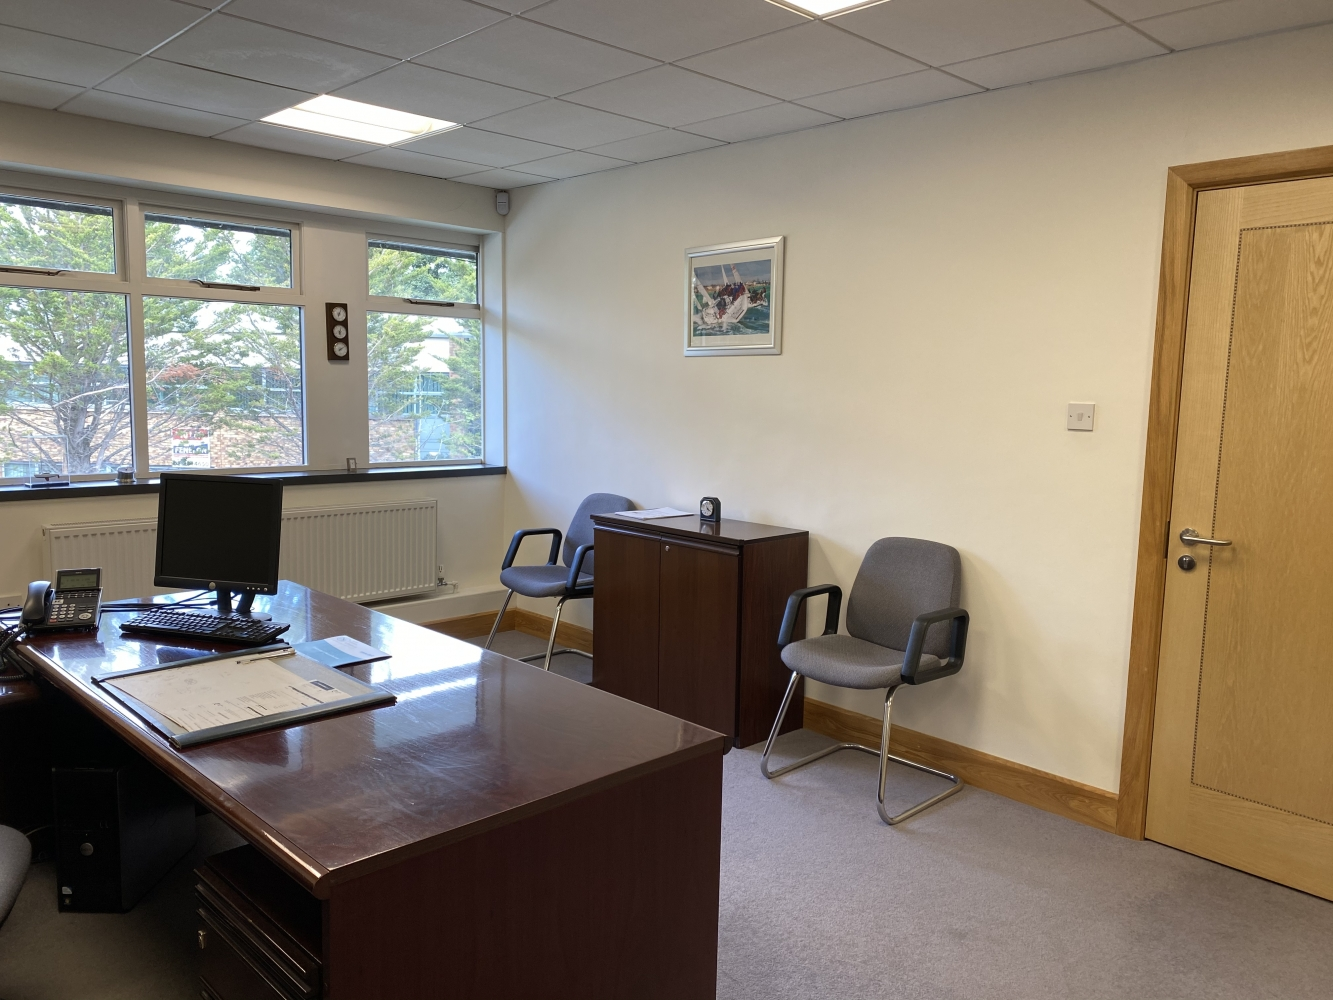 Top Architect Office Design fitout Bray Co. Wicklow